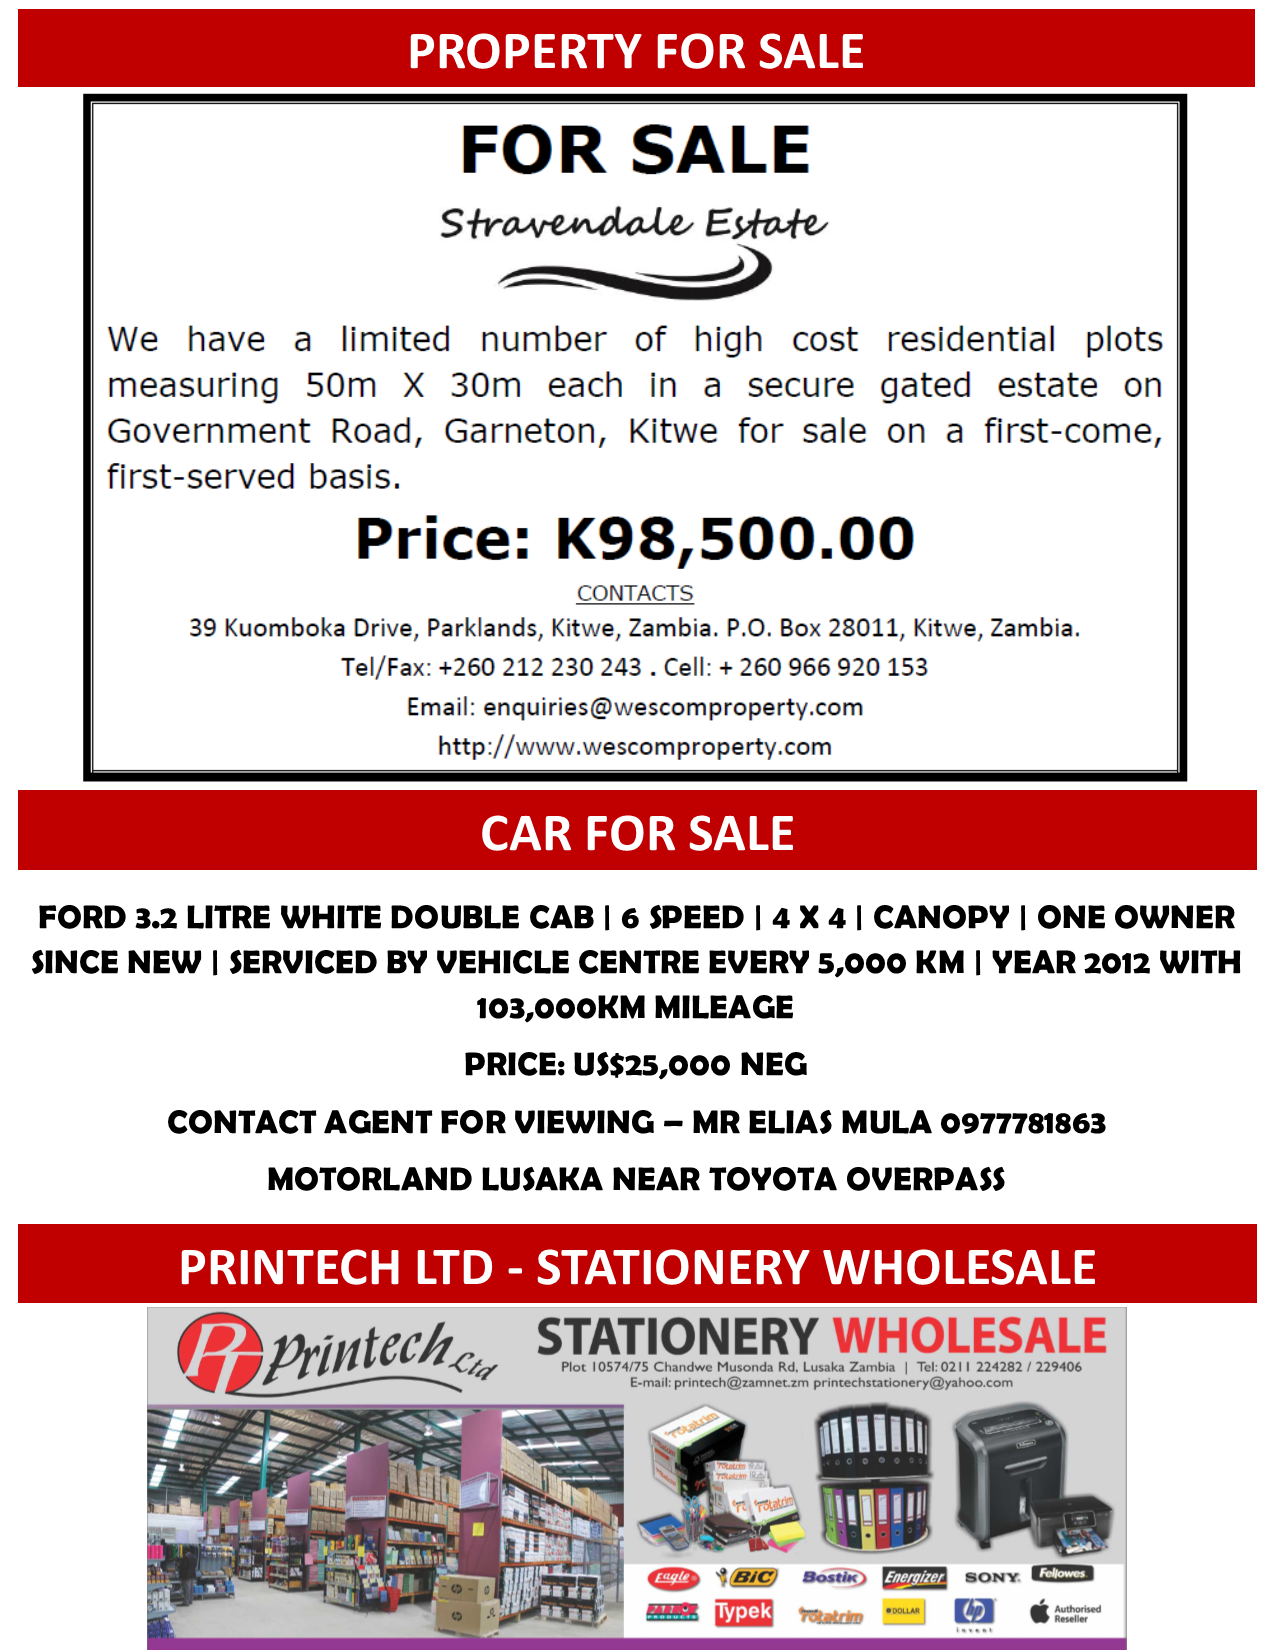 06.02.2017 - PROPERTY FOR SALE / CAR FOR SALE / PRINTECH ...